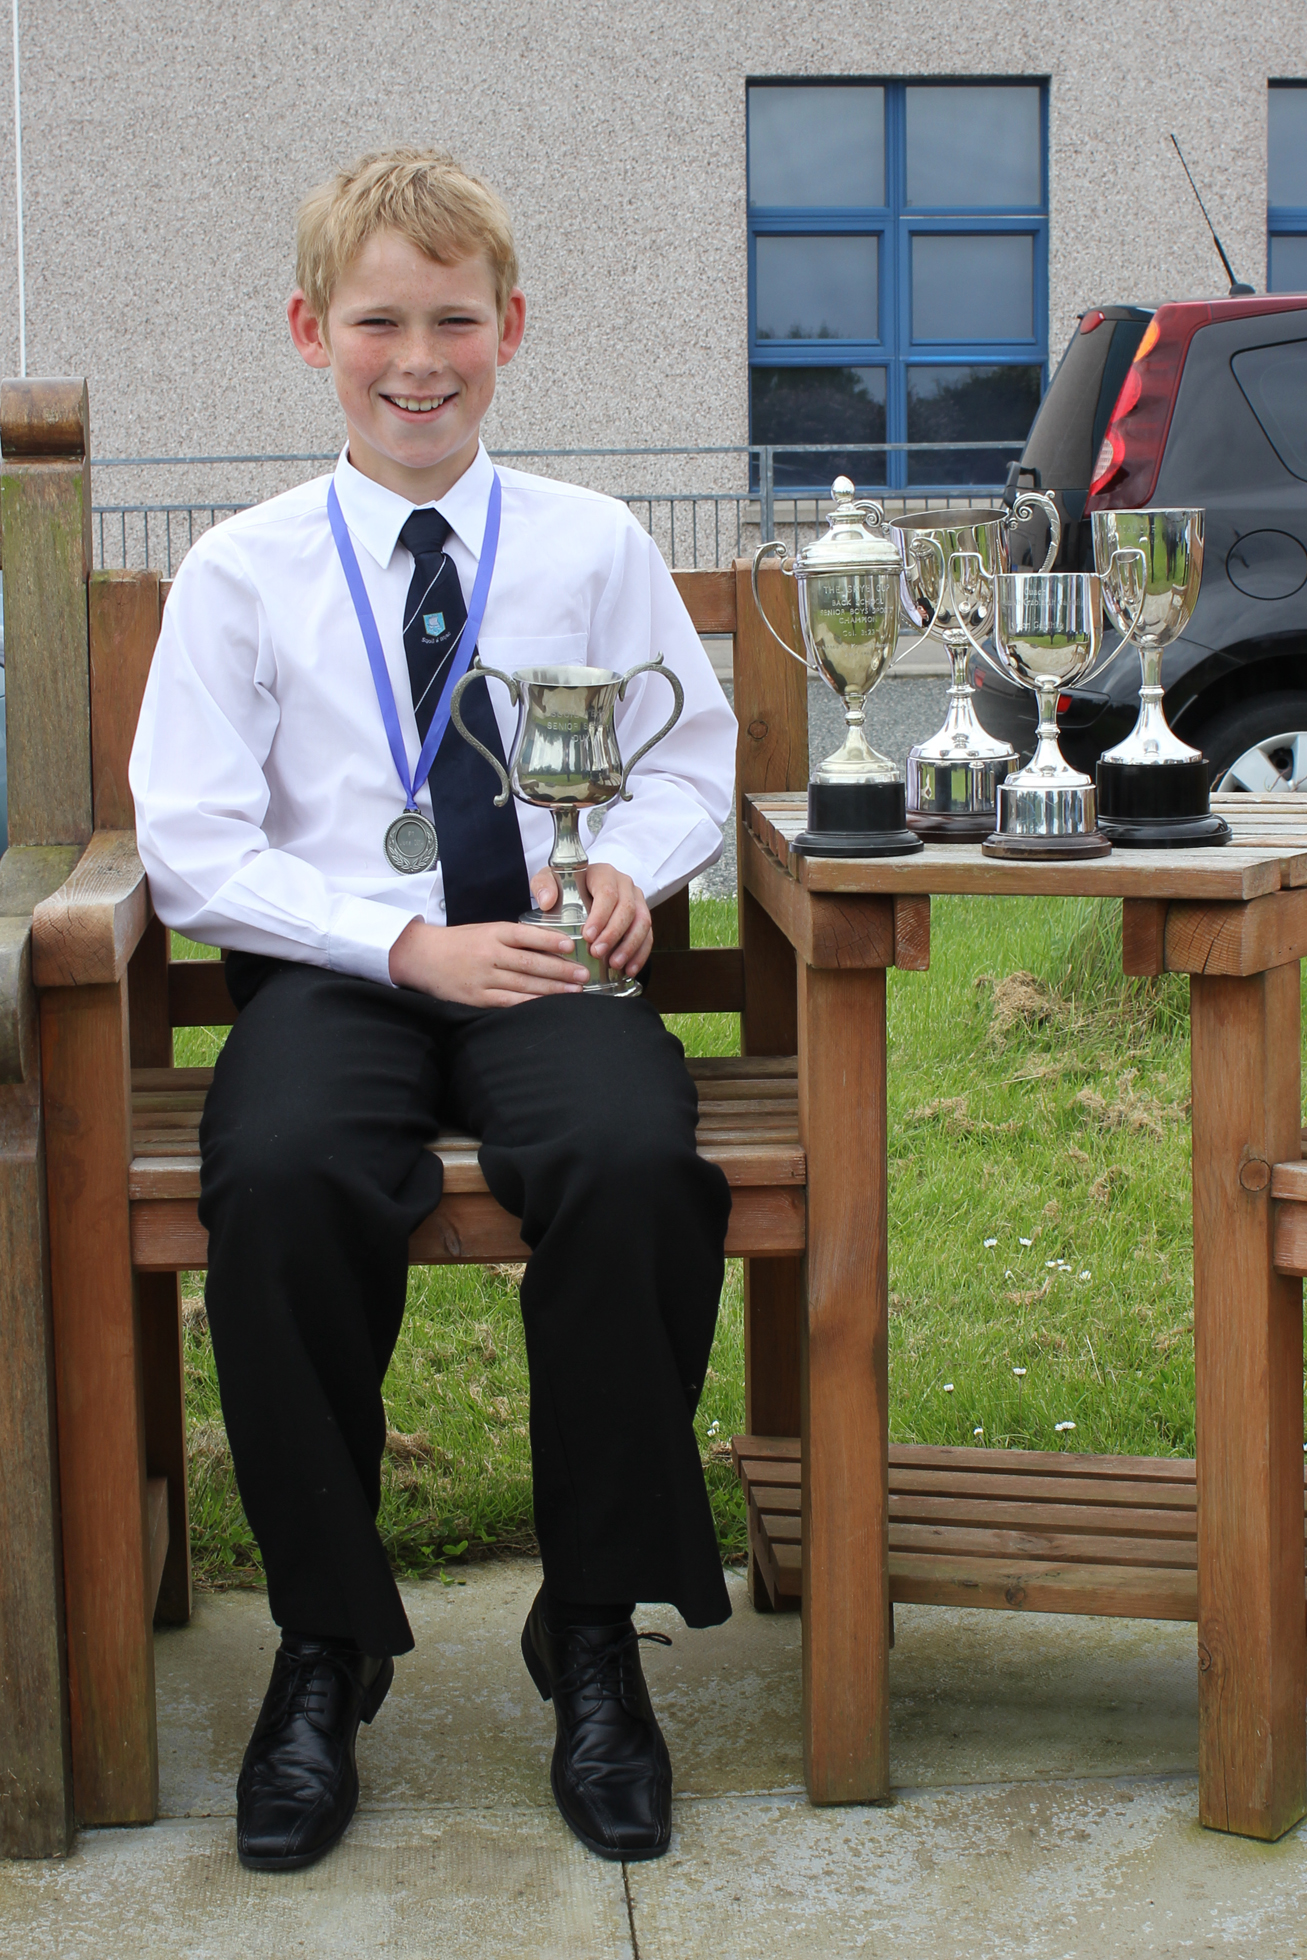 Calum Maclennan - Dux of the School for 2014